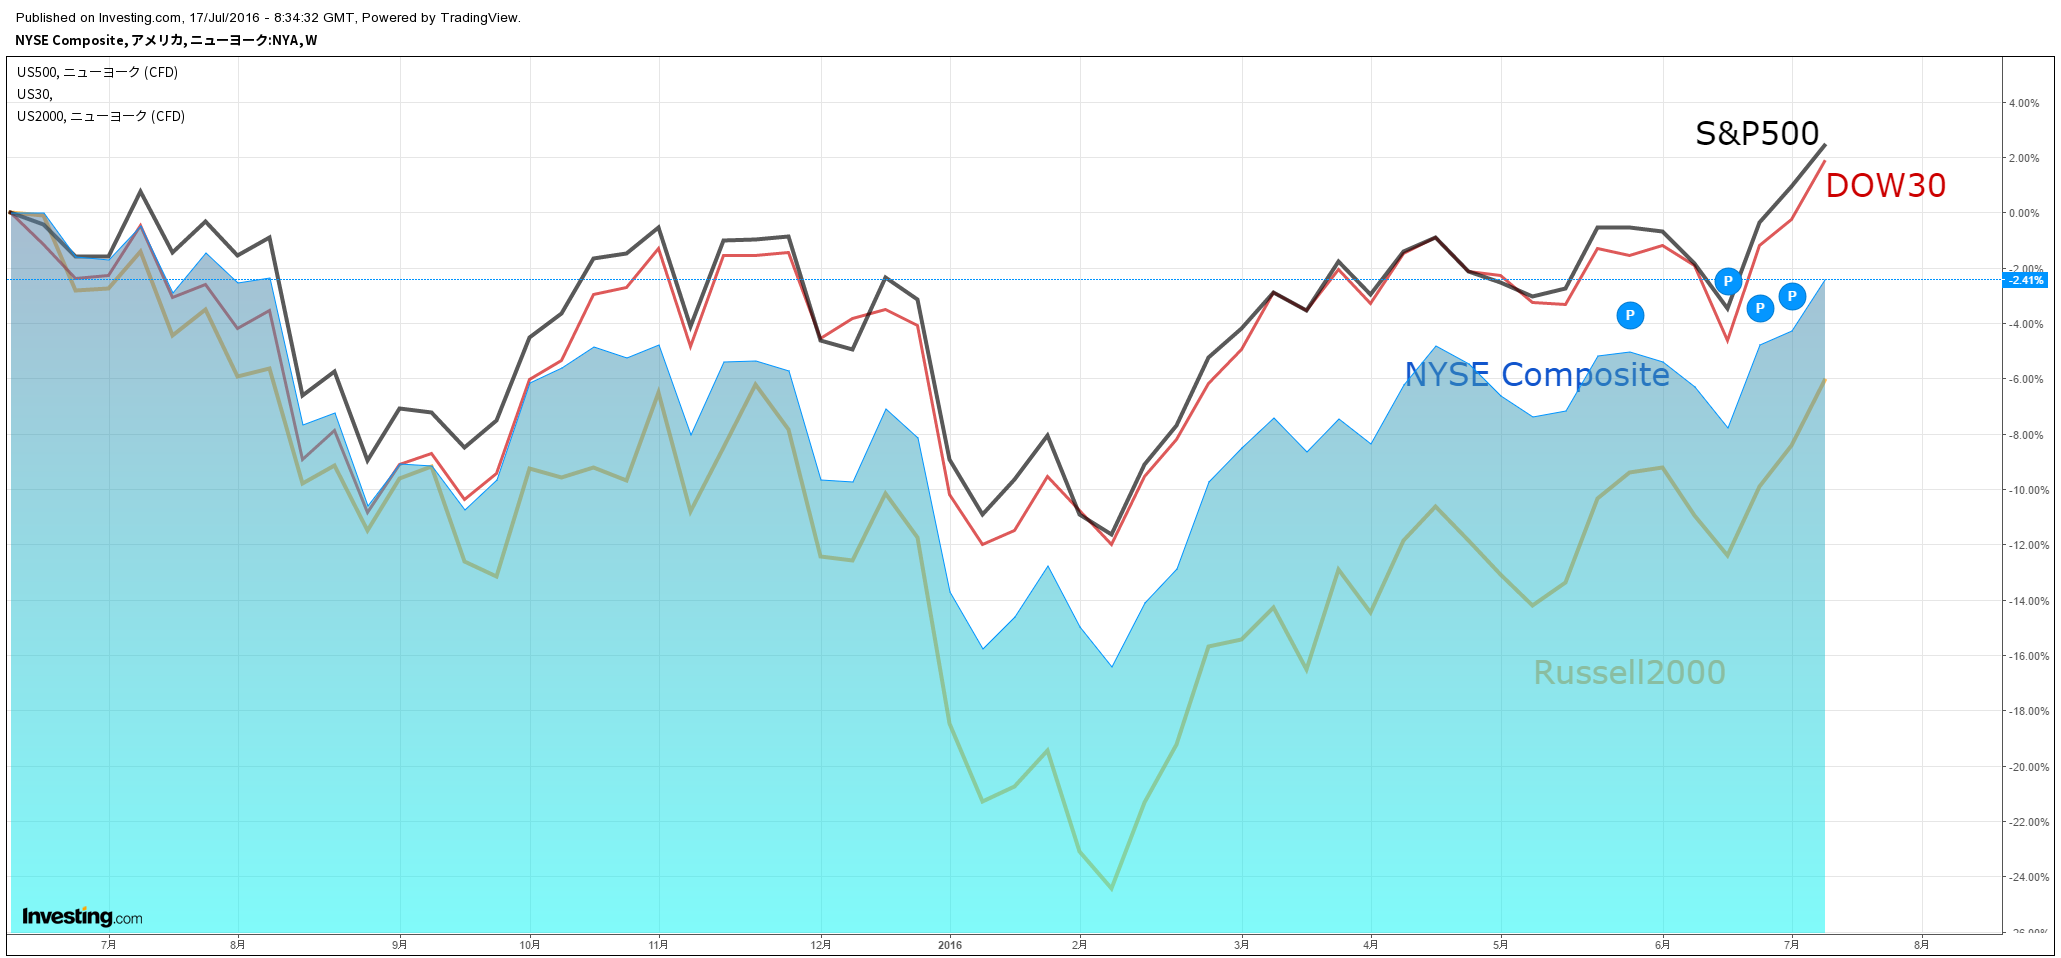 NYSE+SP500+DOW30+RUSSELL2000.png